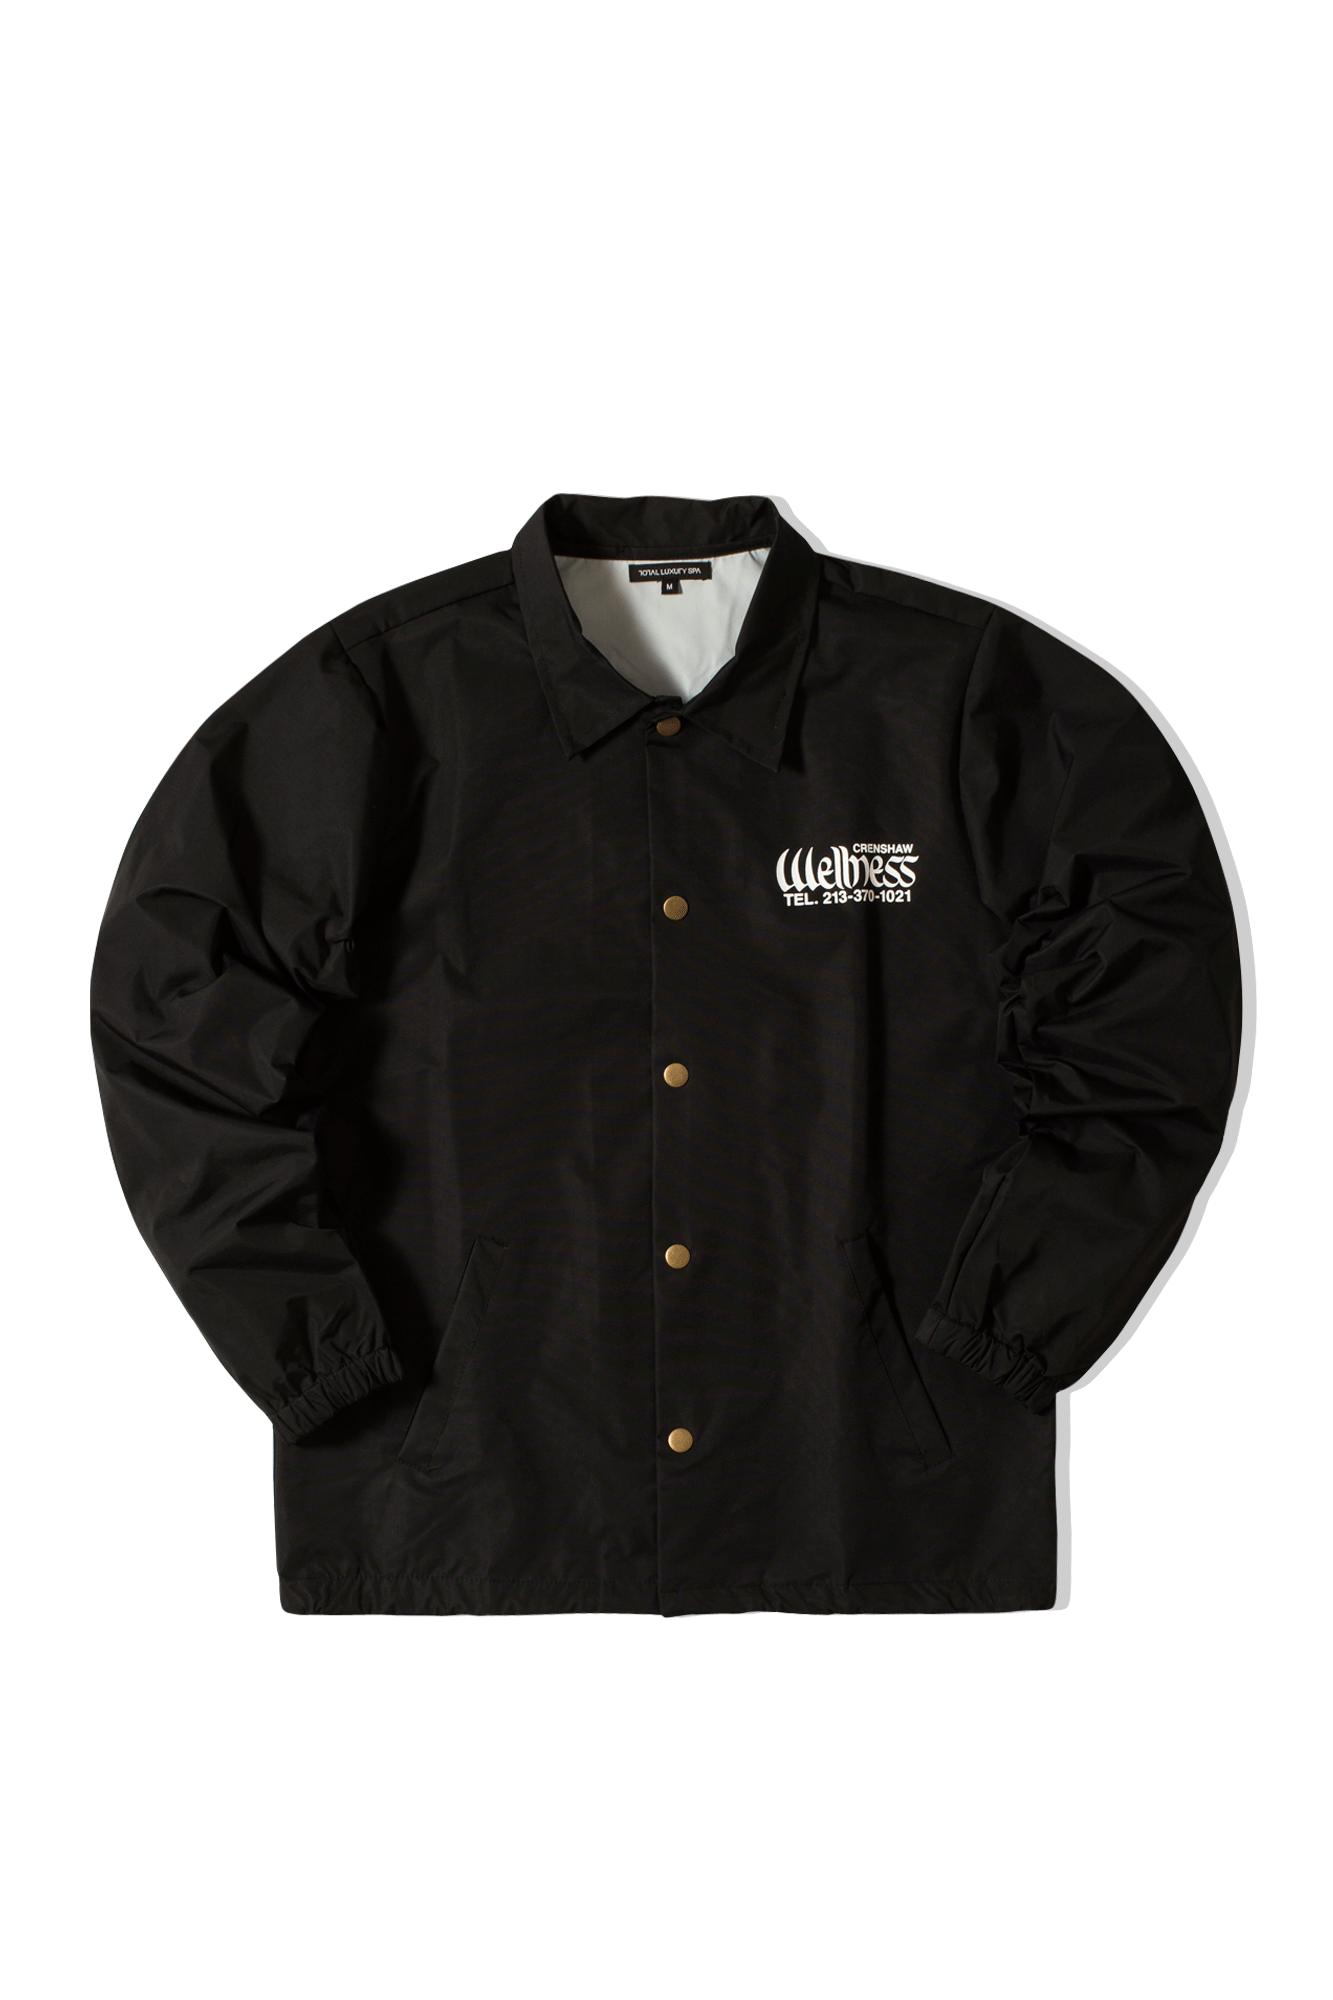 Crenshaw Wellness Life Coach Jacket Nero